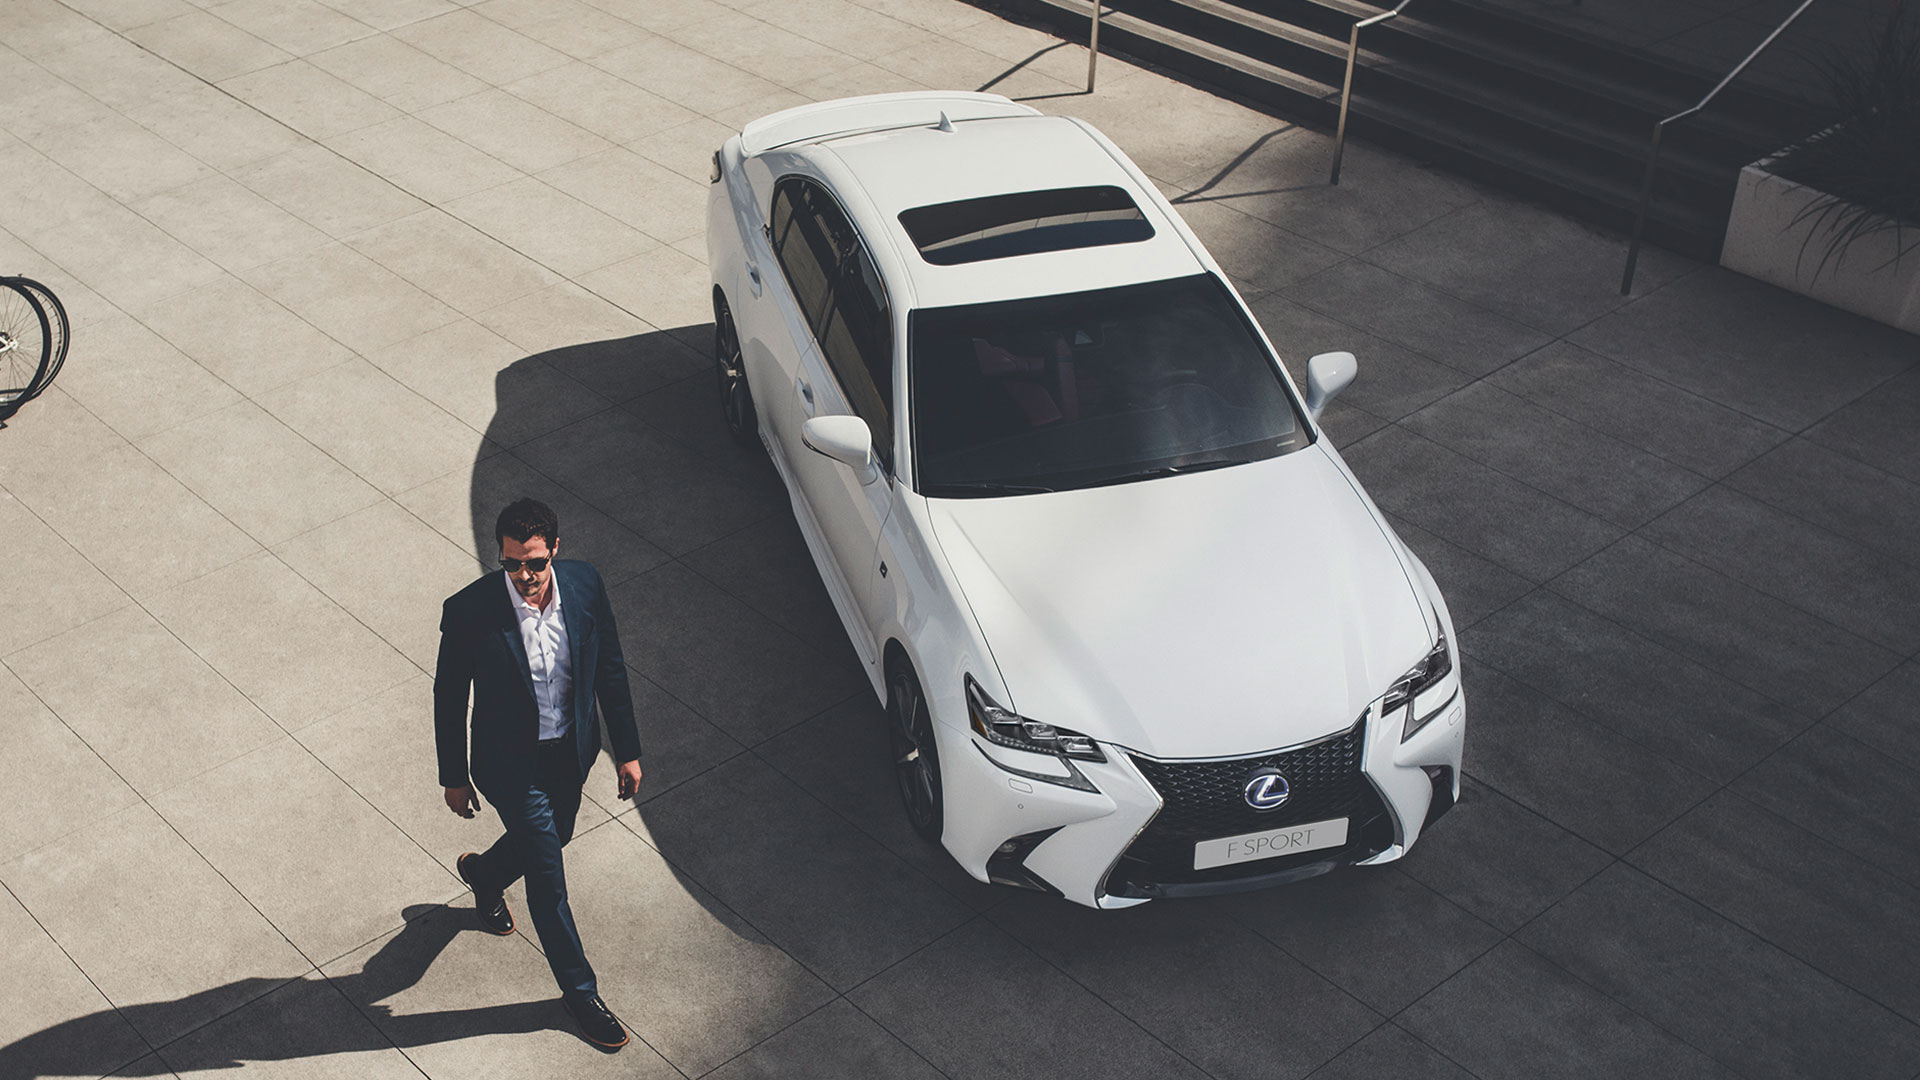 2017 lexus gs next steps behind wheel 1920x1080 ru